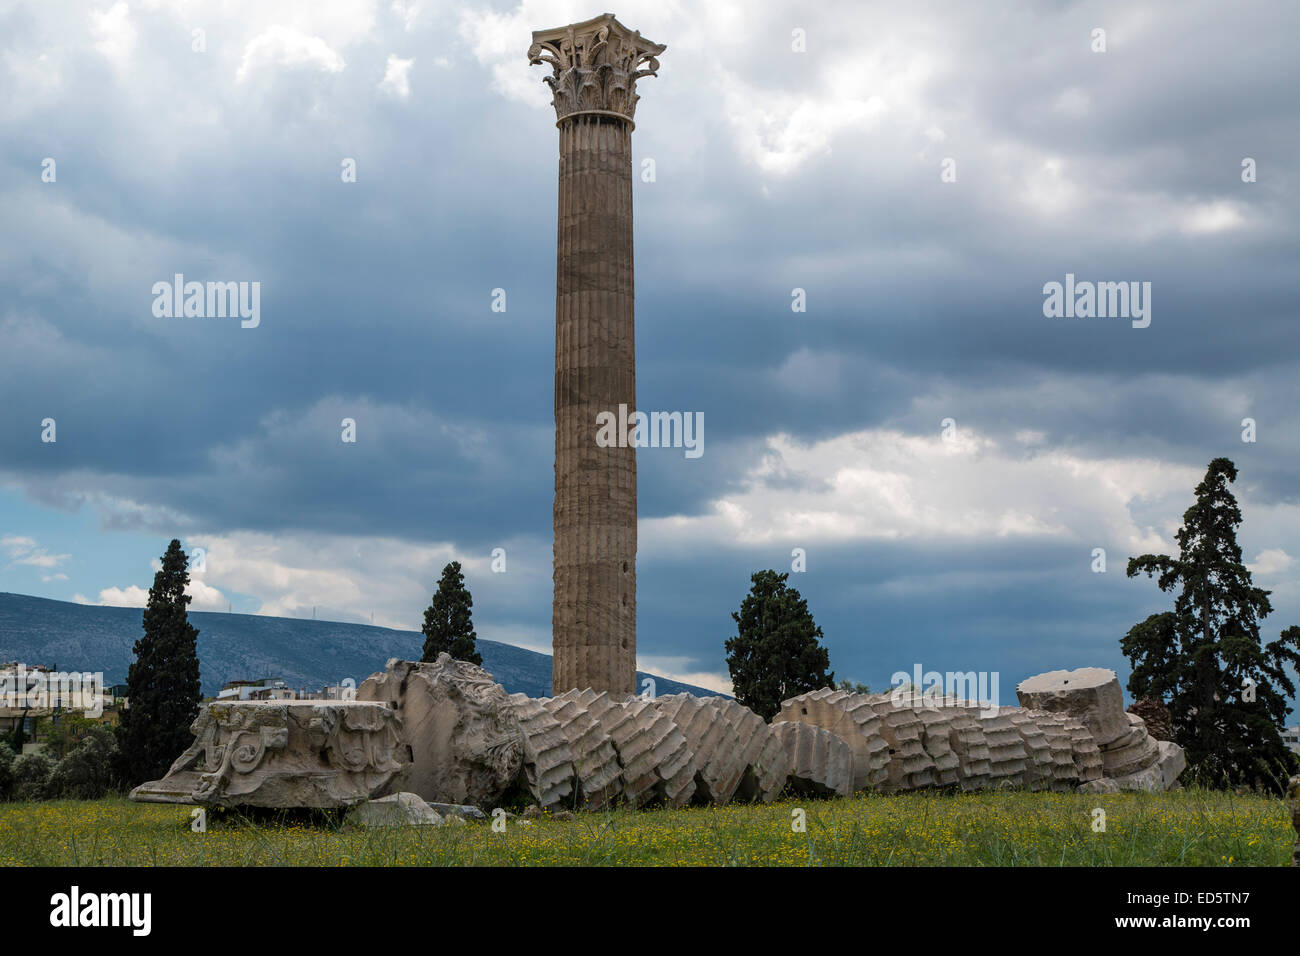 Temple of Olympian Zeus in Athens, Greece - Stock Image